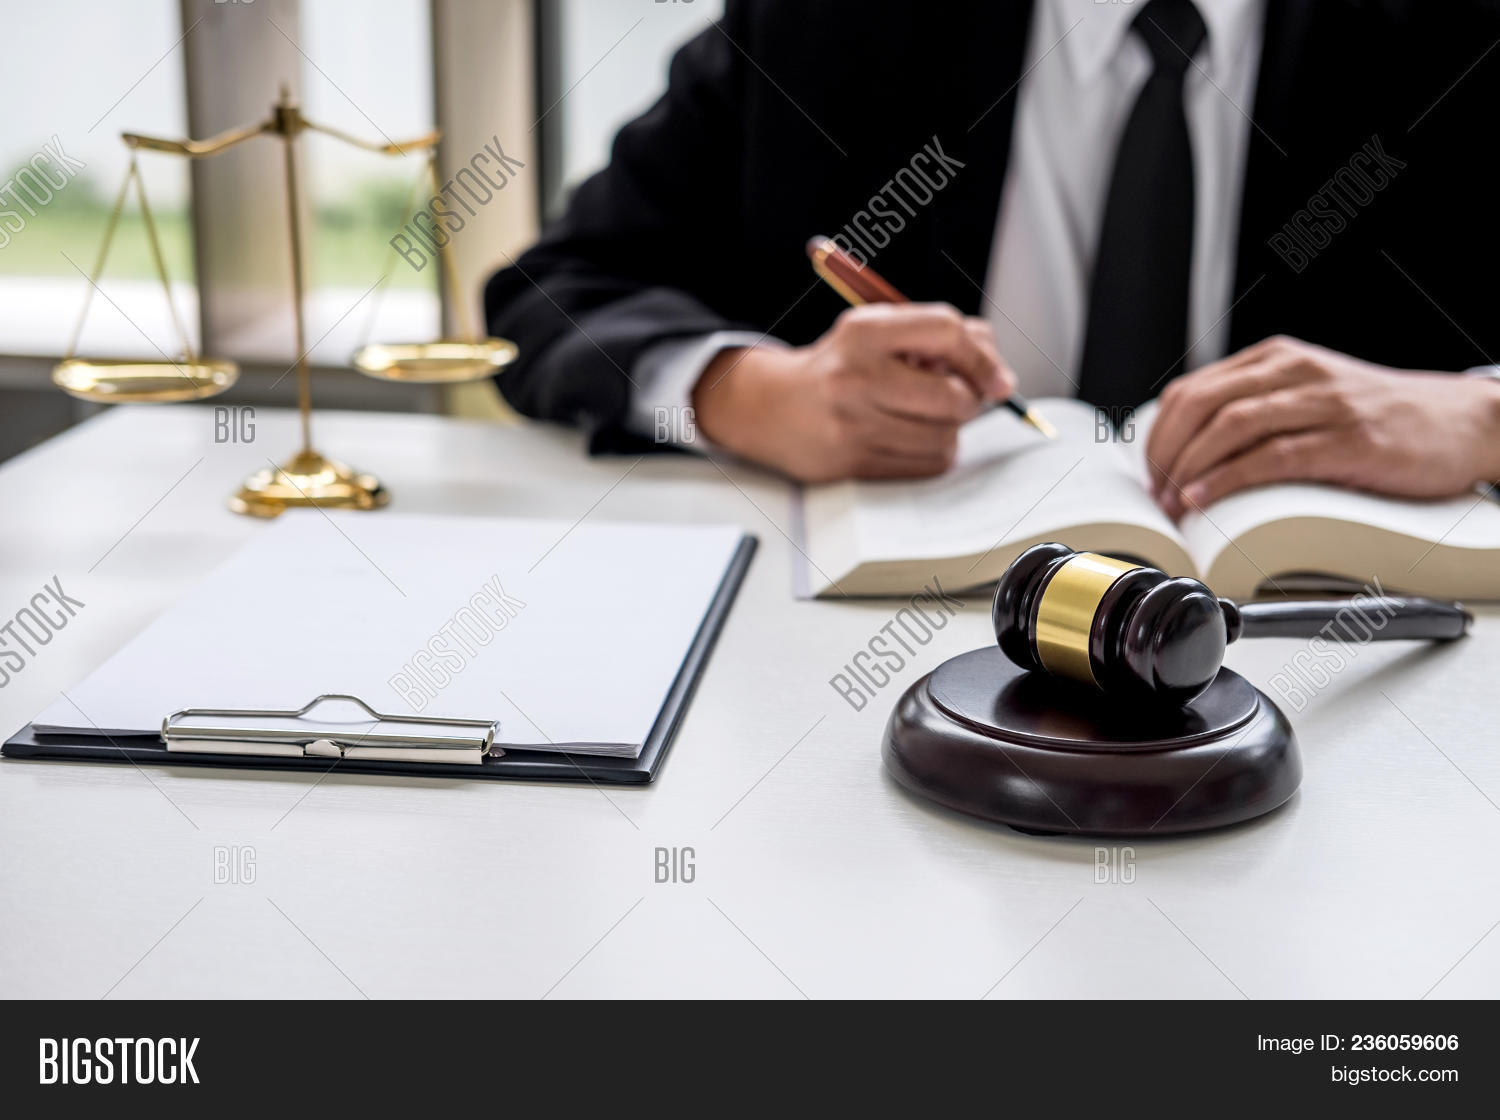 advice,adviser,advocate,agreement,attorney,auction,banknote,book,bribery,business,communication,consult,consultant,contract,corruptibility,corruption,court,courtroom,crime,criminal,customer,dirty,dispute,estate,firm,gavel,hammer,illegal,instructive,judge,jurisprudence,jurist,justice,law,lawyer,legal,legislation,legislator,loan,meeting,money,office,real,recommend,remuneration,salary,service,solicitor,symbol,verdict